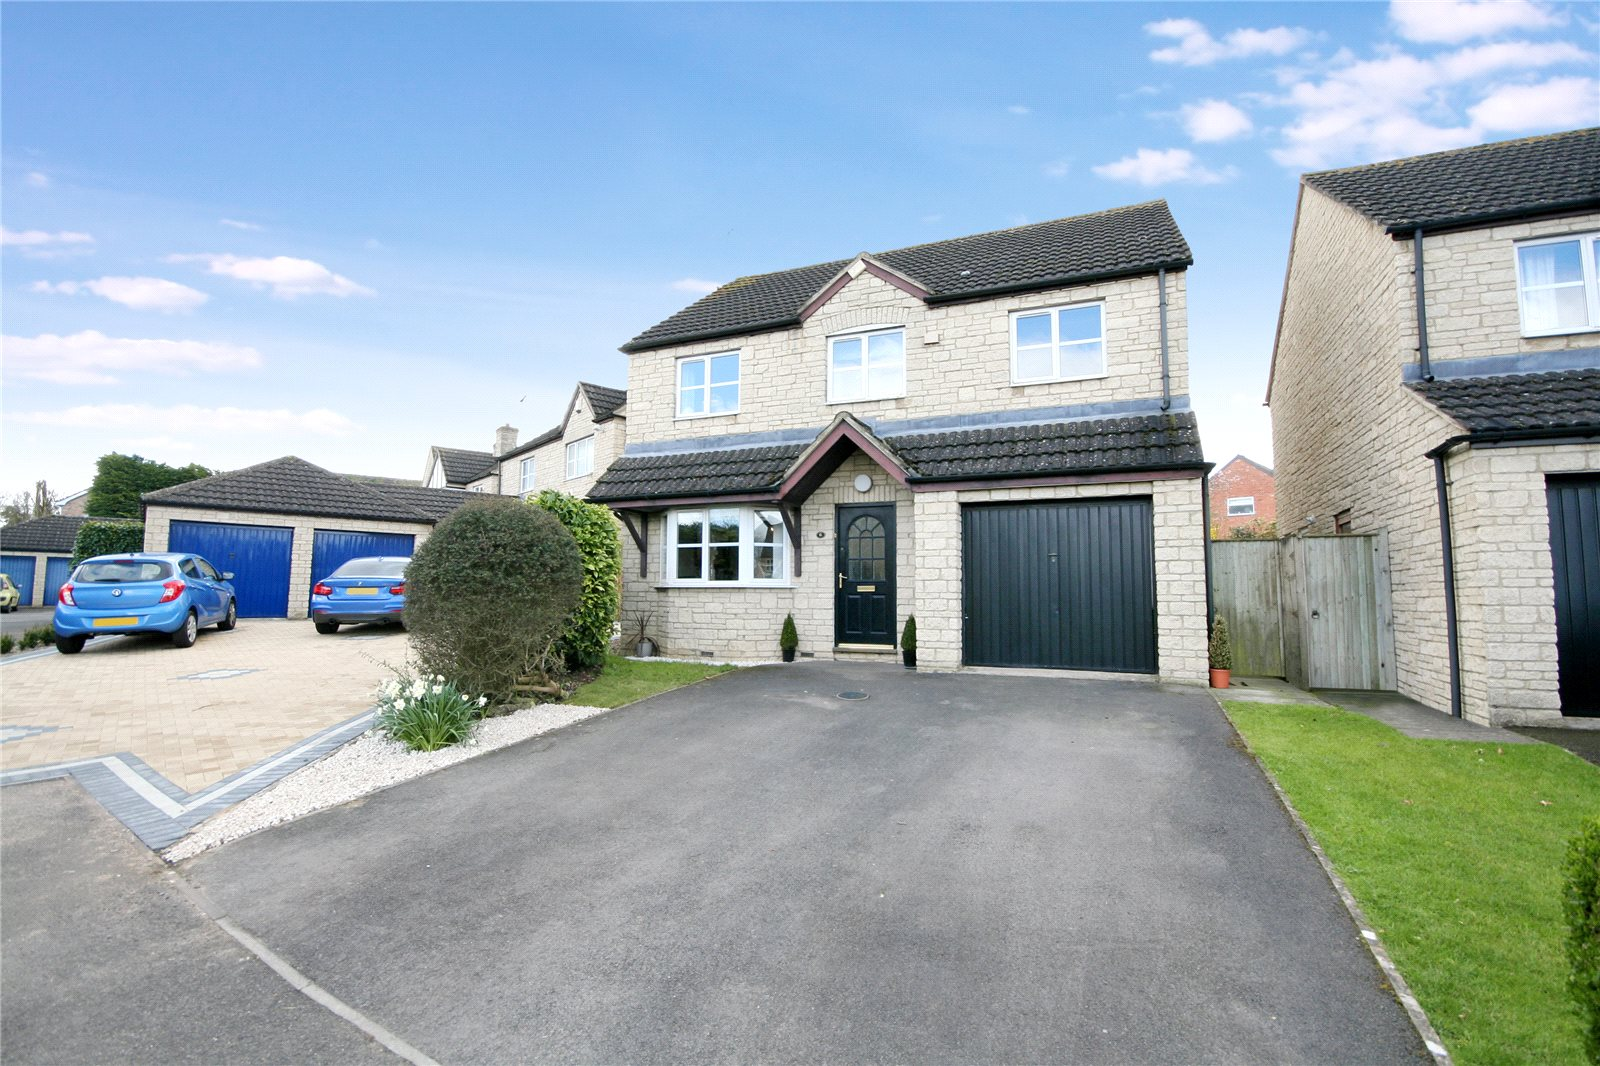 4 Bedrooms Detached House for sale in Frampton Mews The Reddings Cheltenham GL51